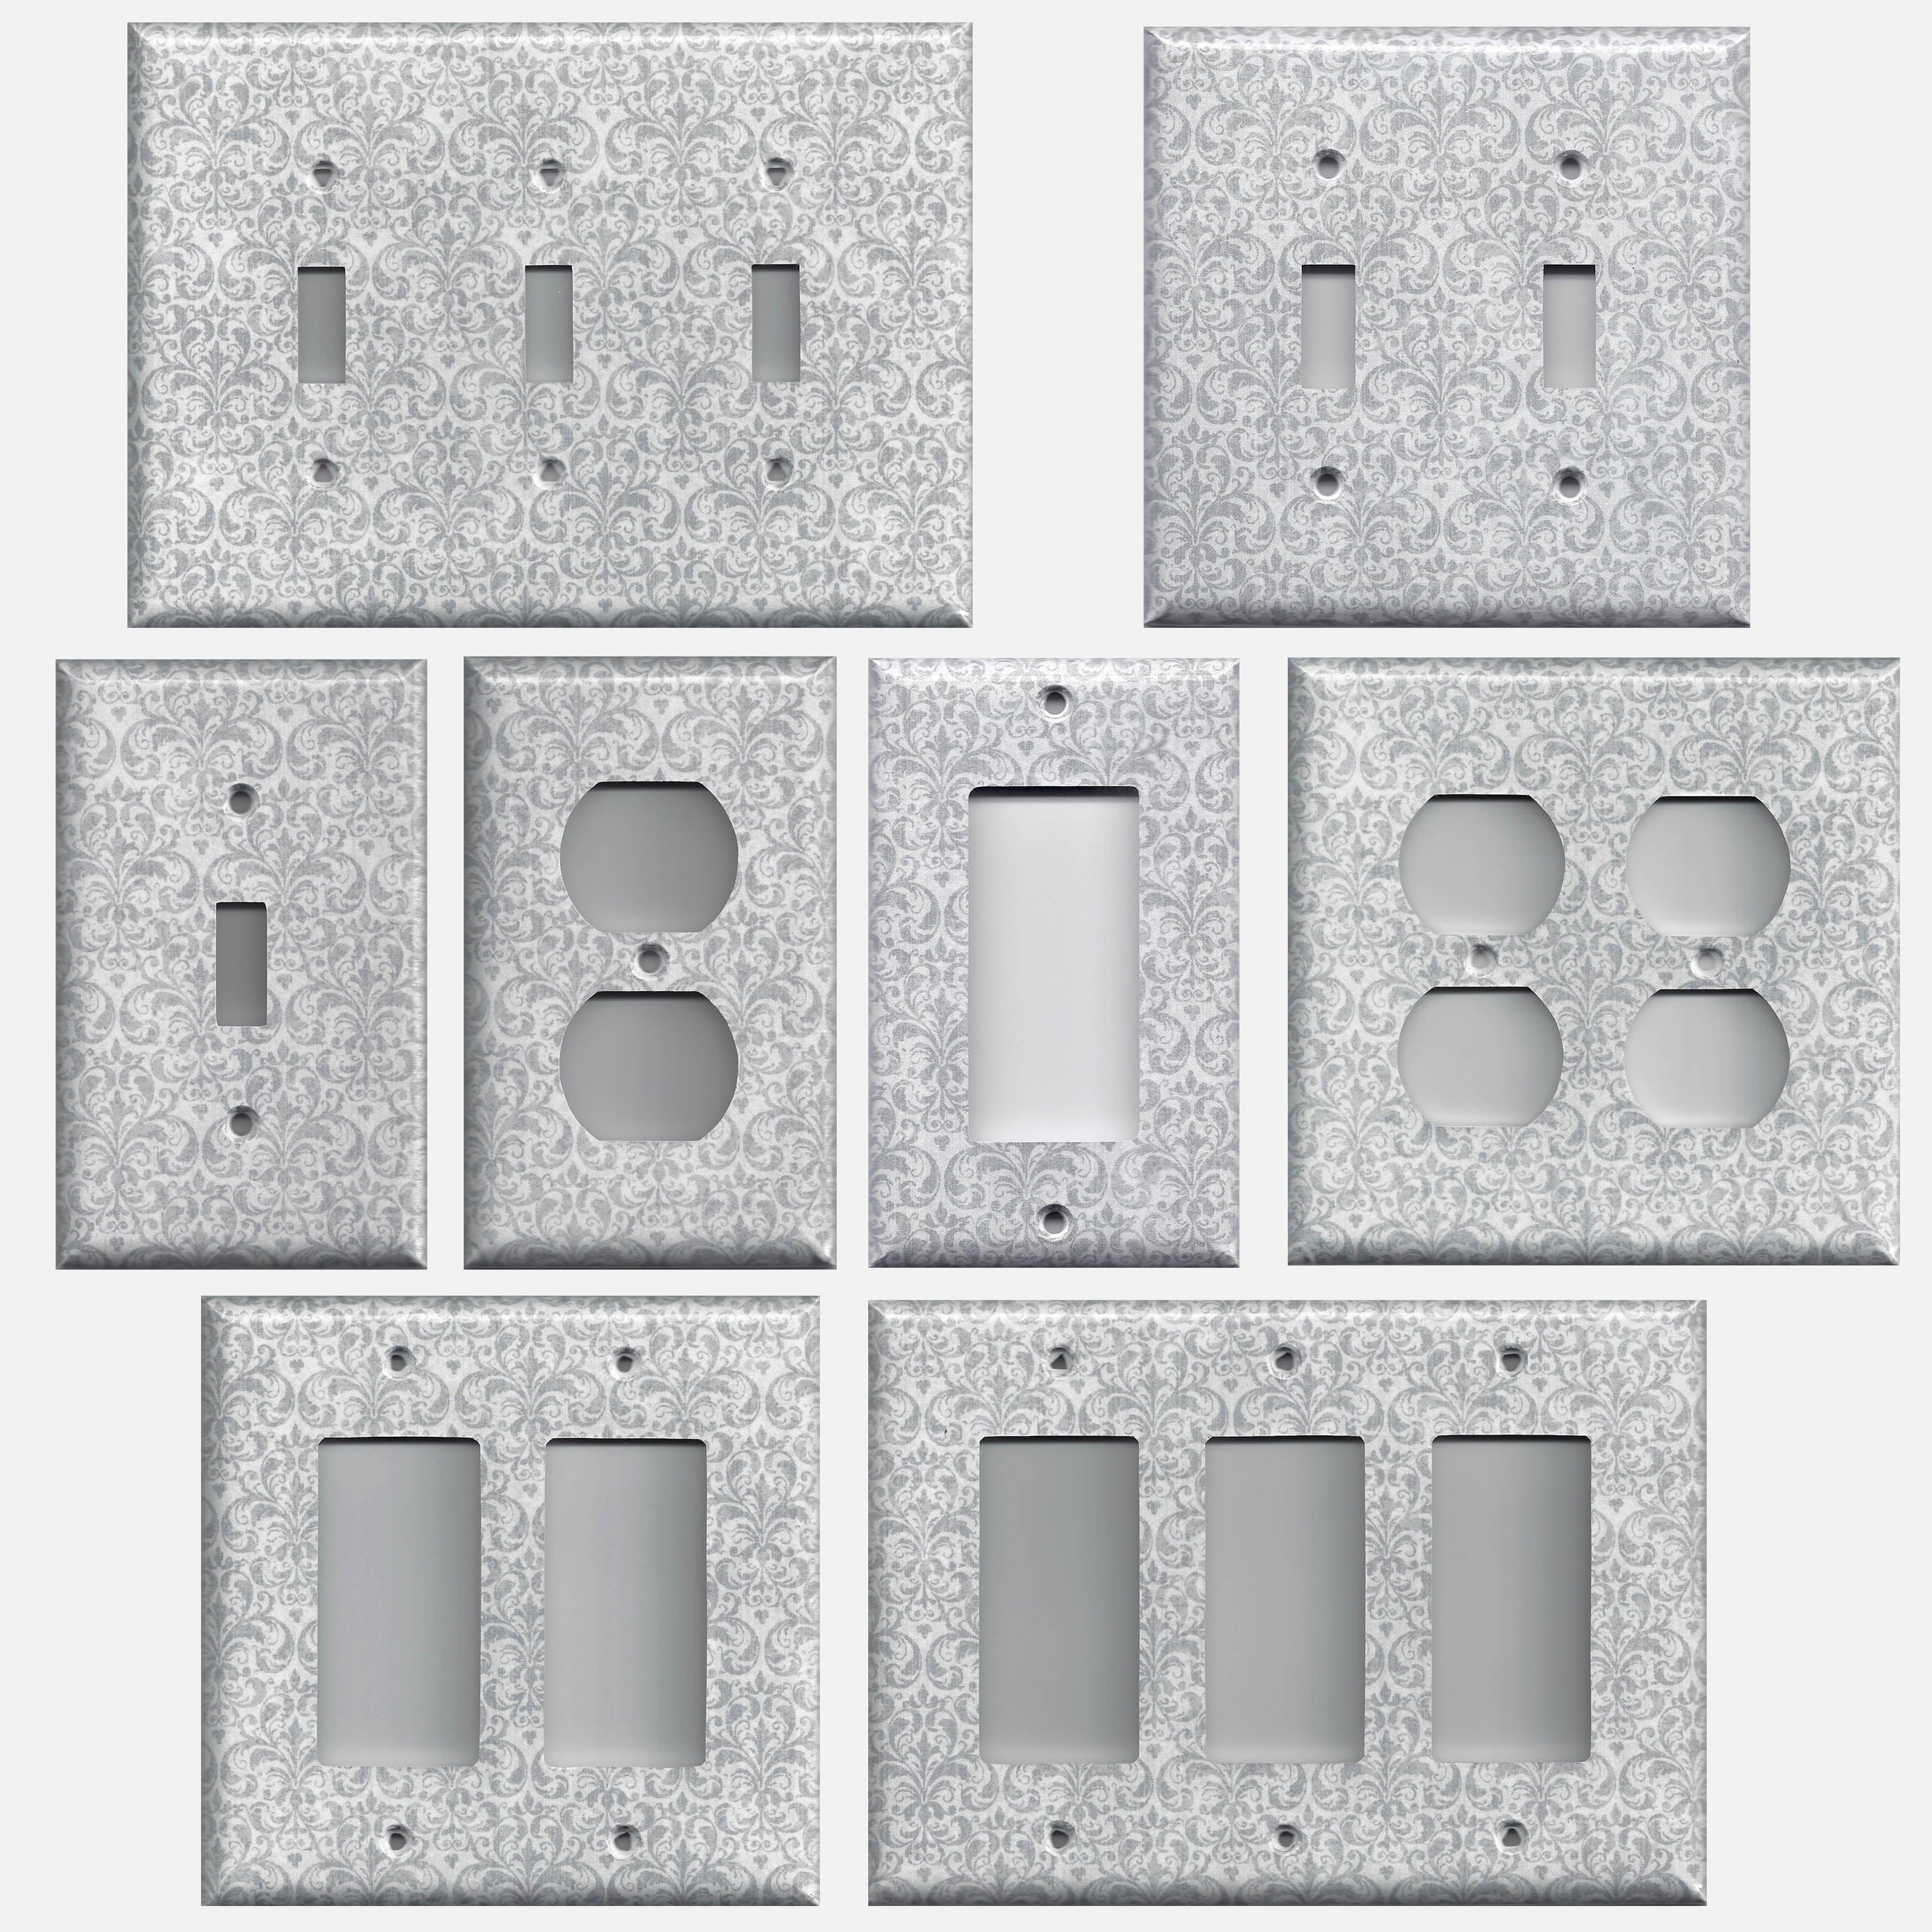 silver gray grey damask print light switch plates outlet covers